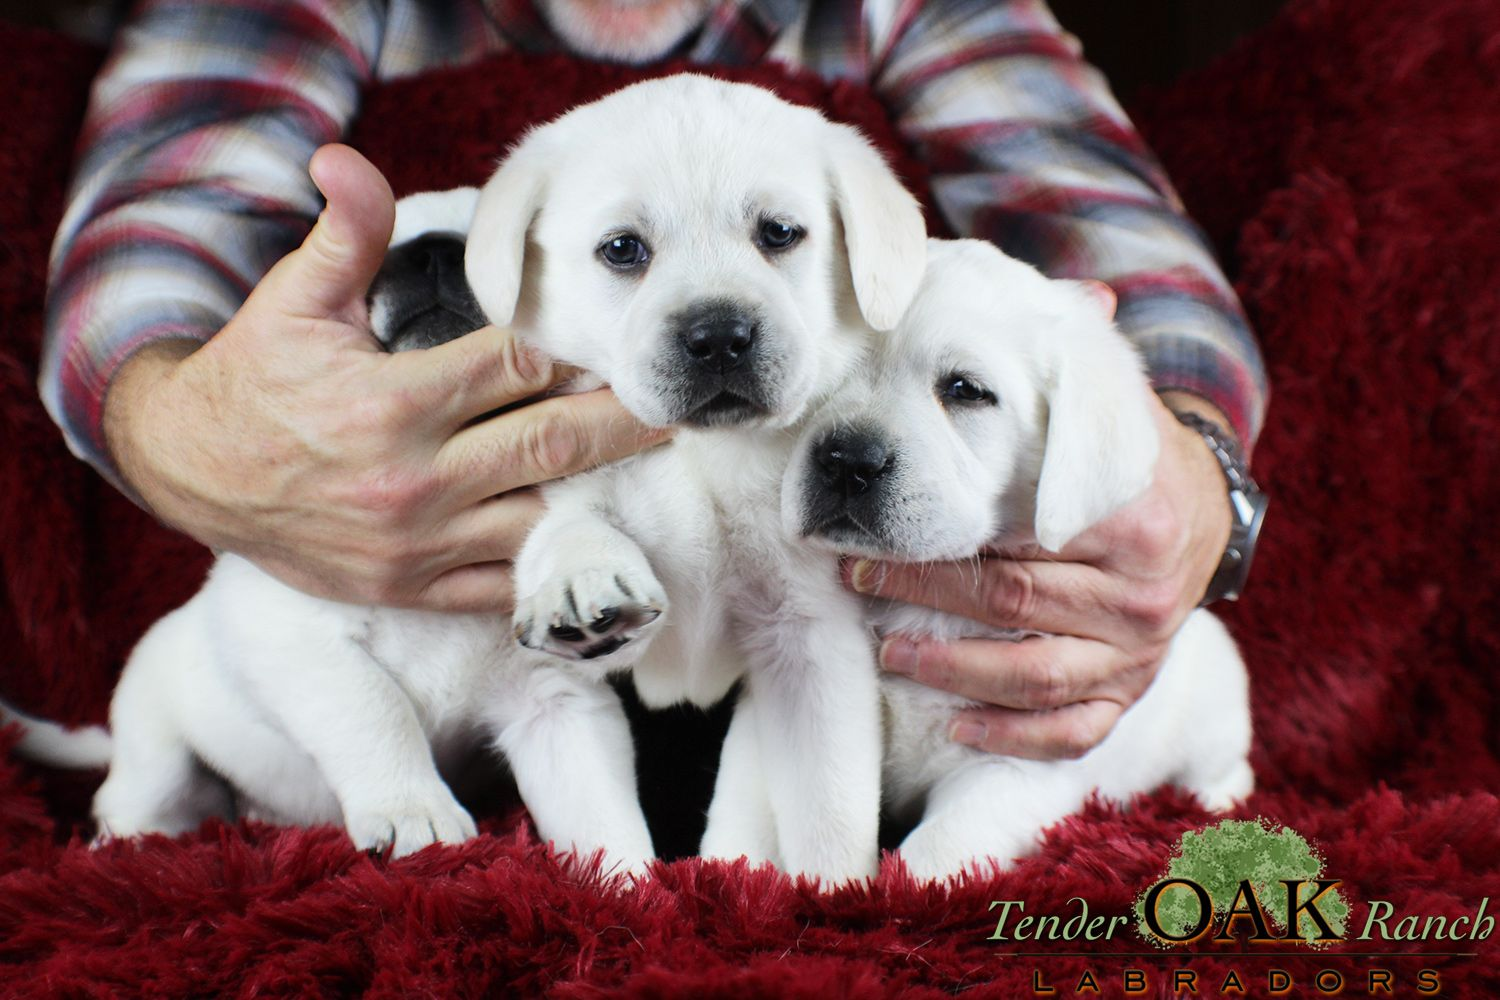 Yellow Lab Puppy Ready For Sale Labrador Puppies For Sale Labrador Puppy Yellow Lab Puppy